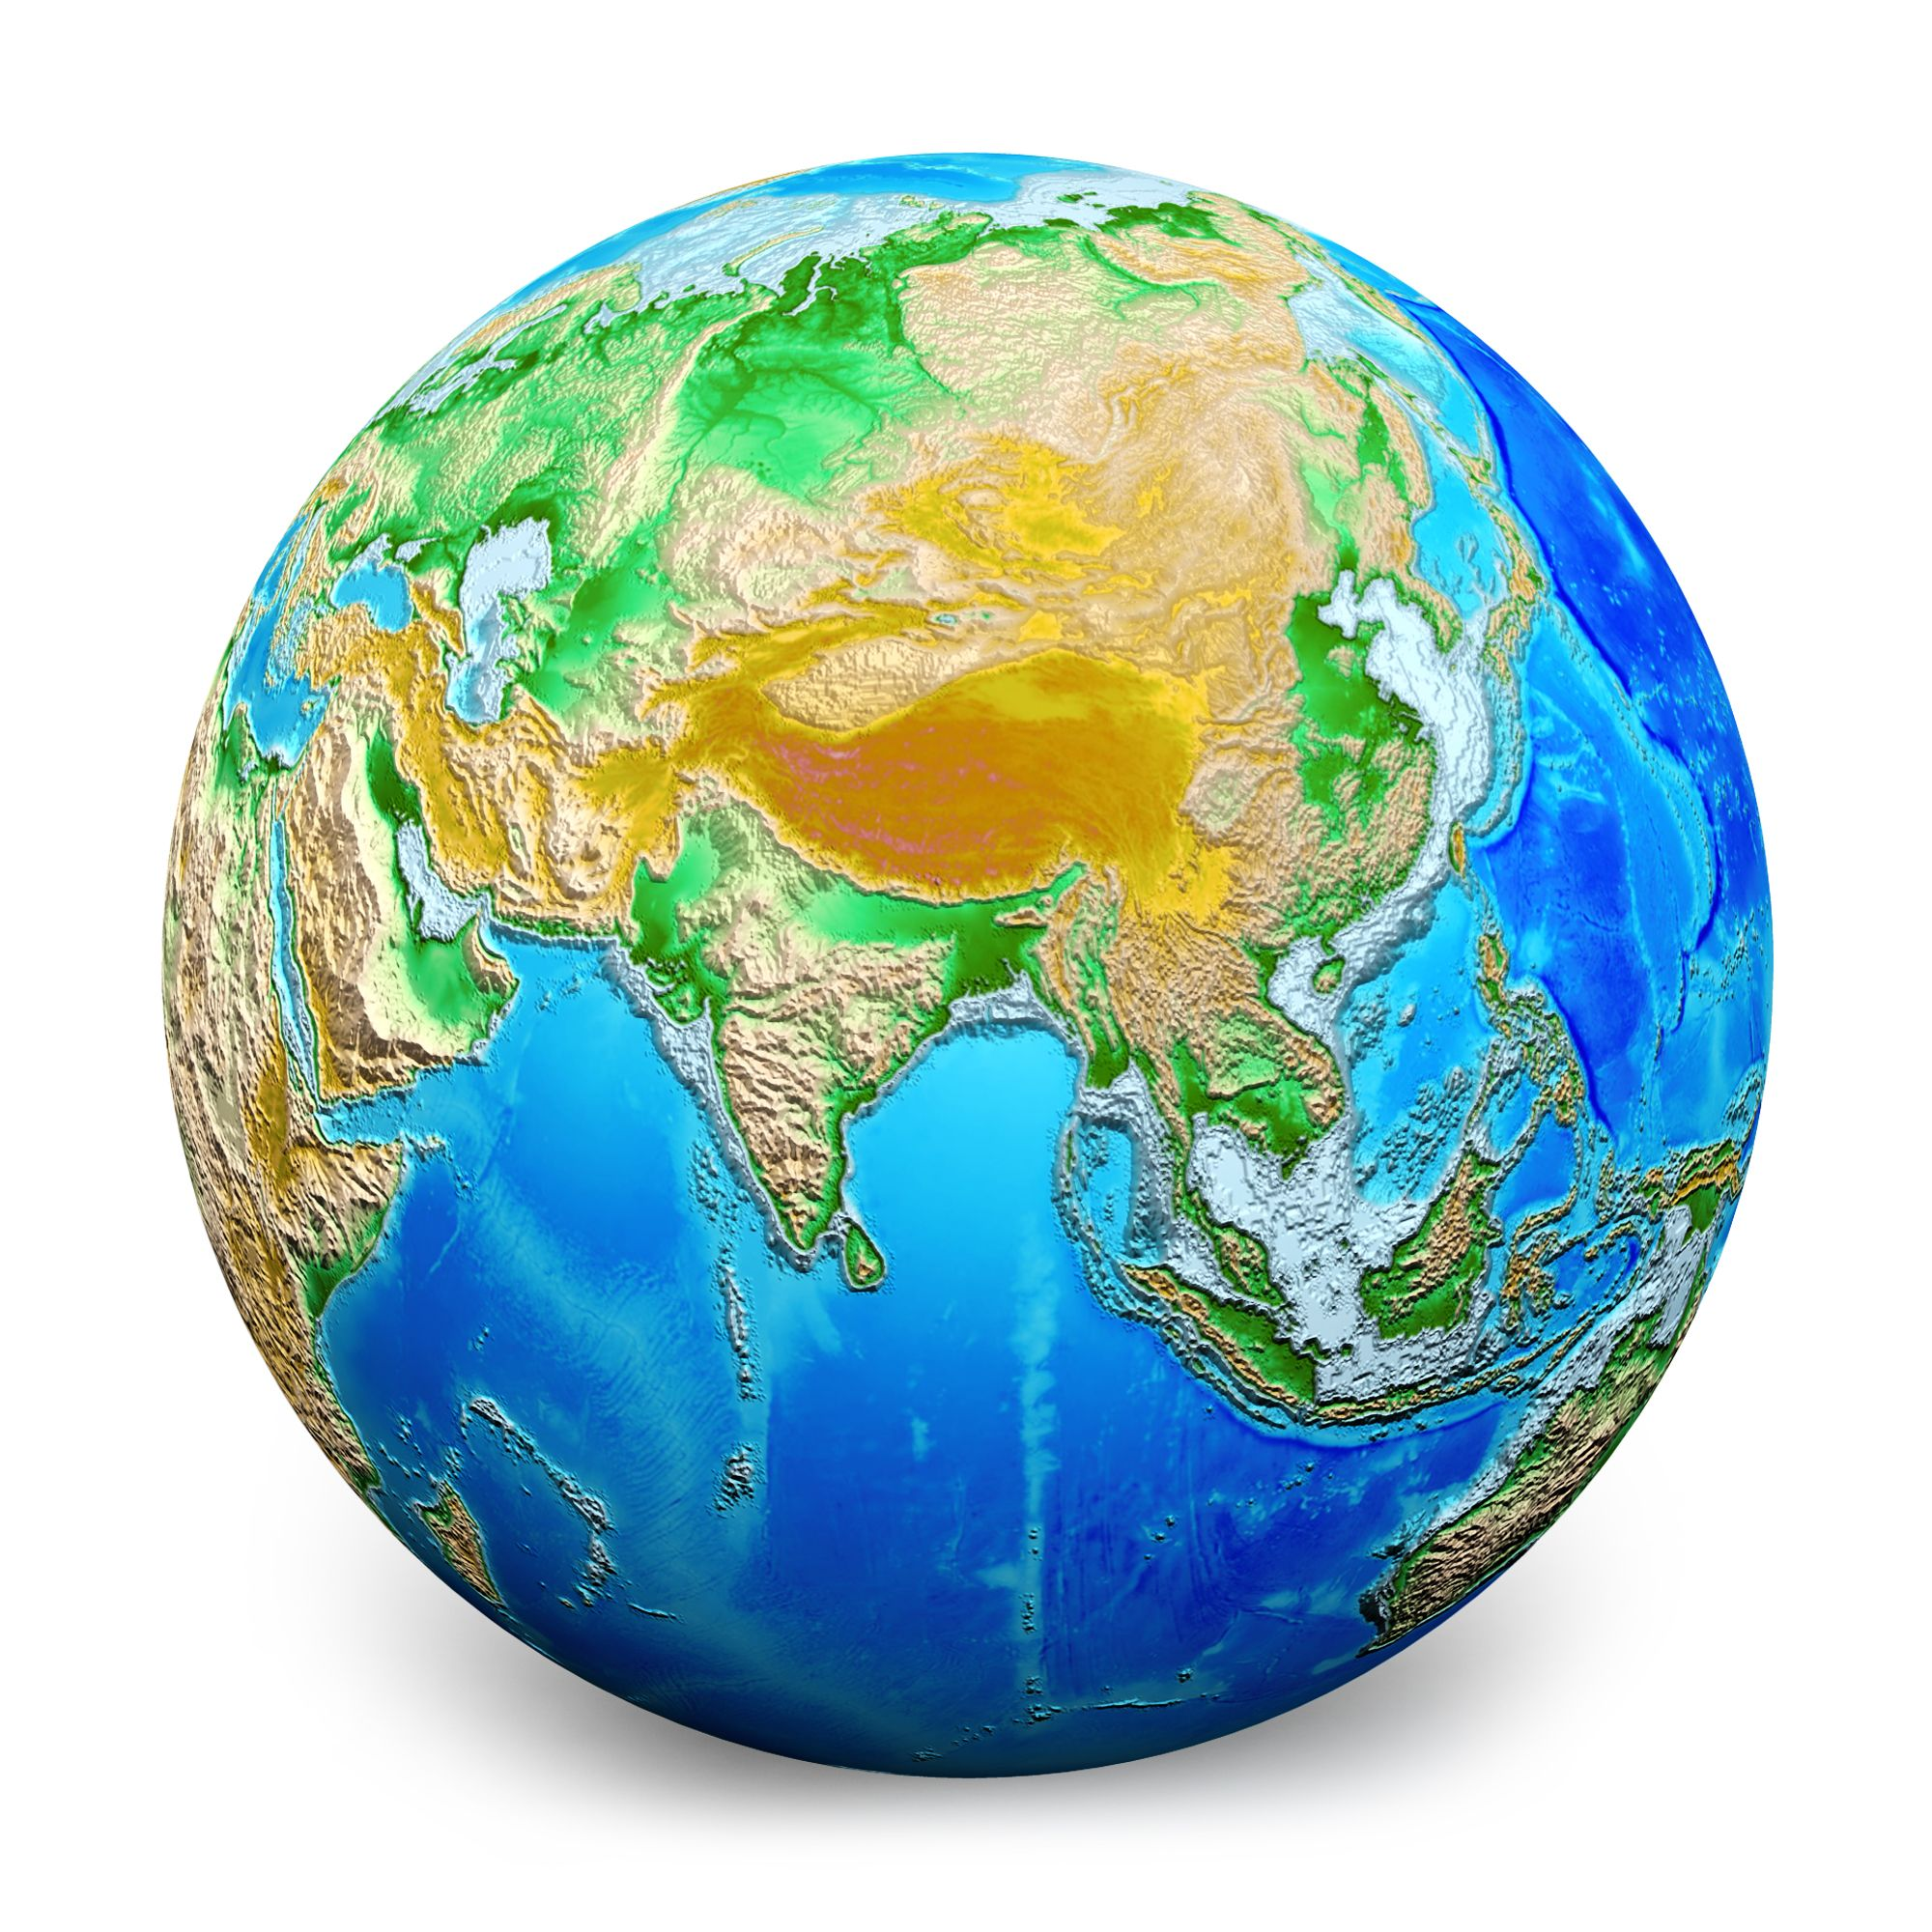 Globe Wallpaper: 3D Earth Globe Graphic With White Background Stock Photo